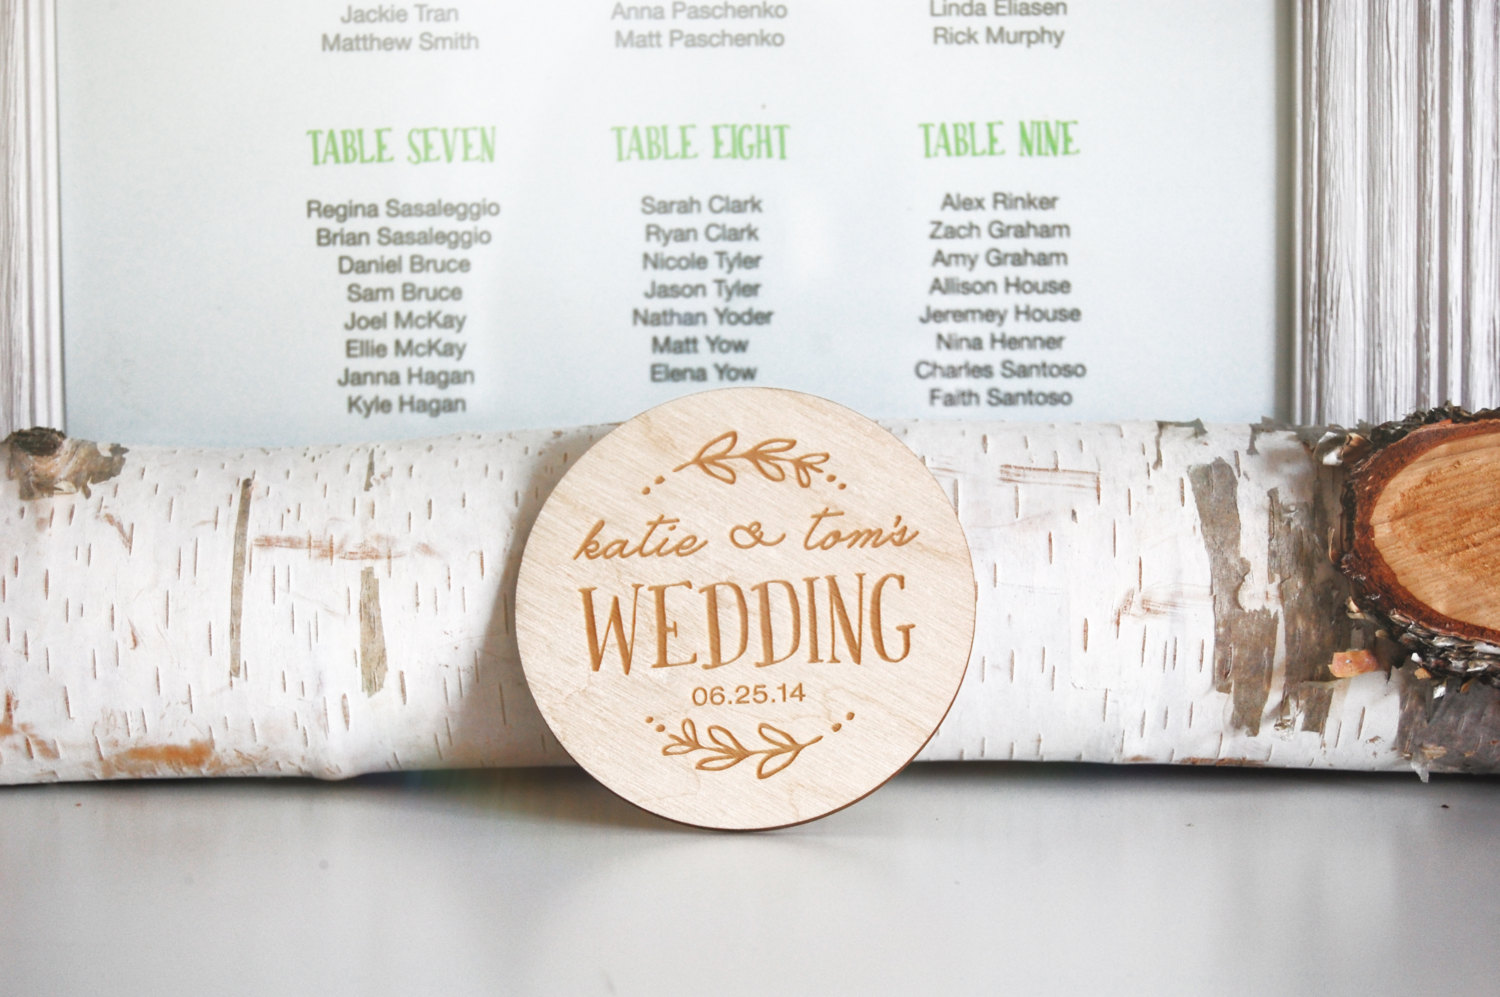 17 Coasters That Will Look Absolutely Lovely at Weddings